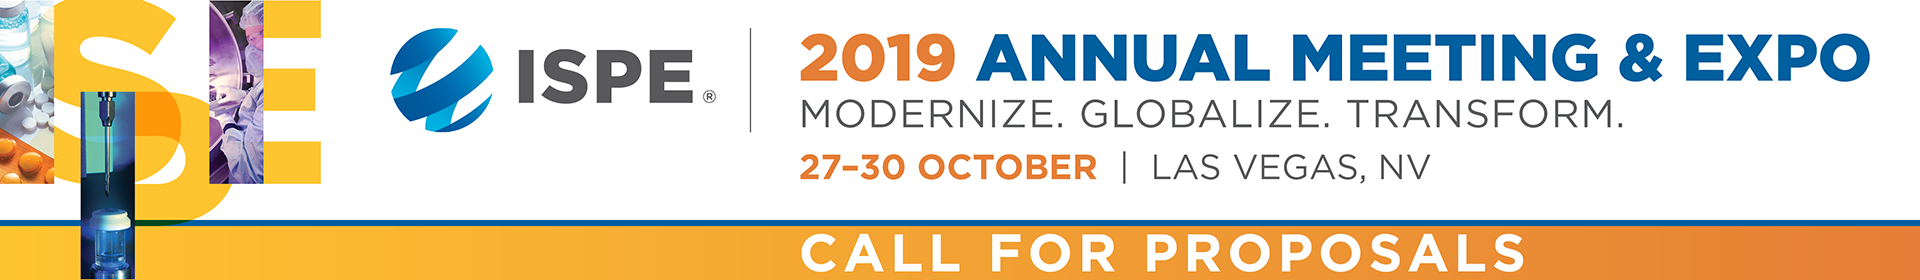 2019 ISPE Annual Meeting & Expo Event Banner